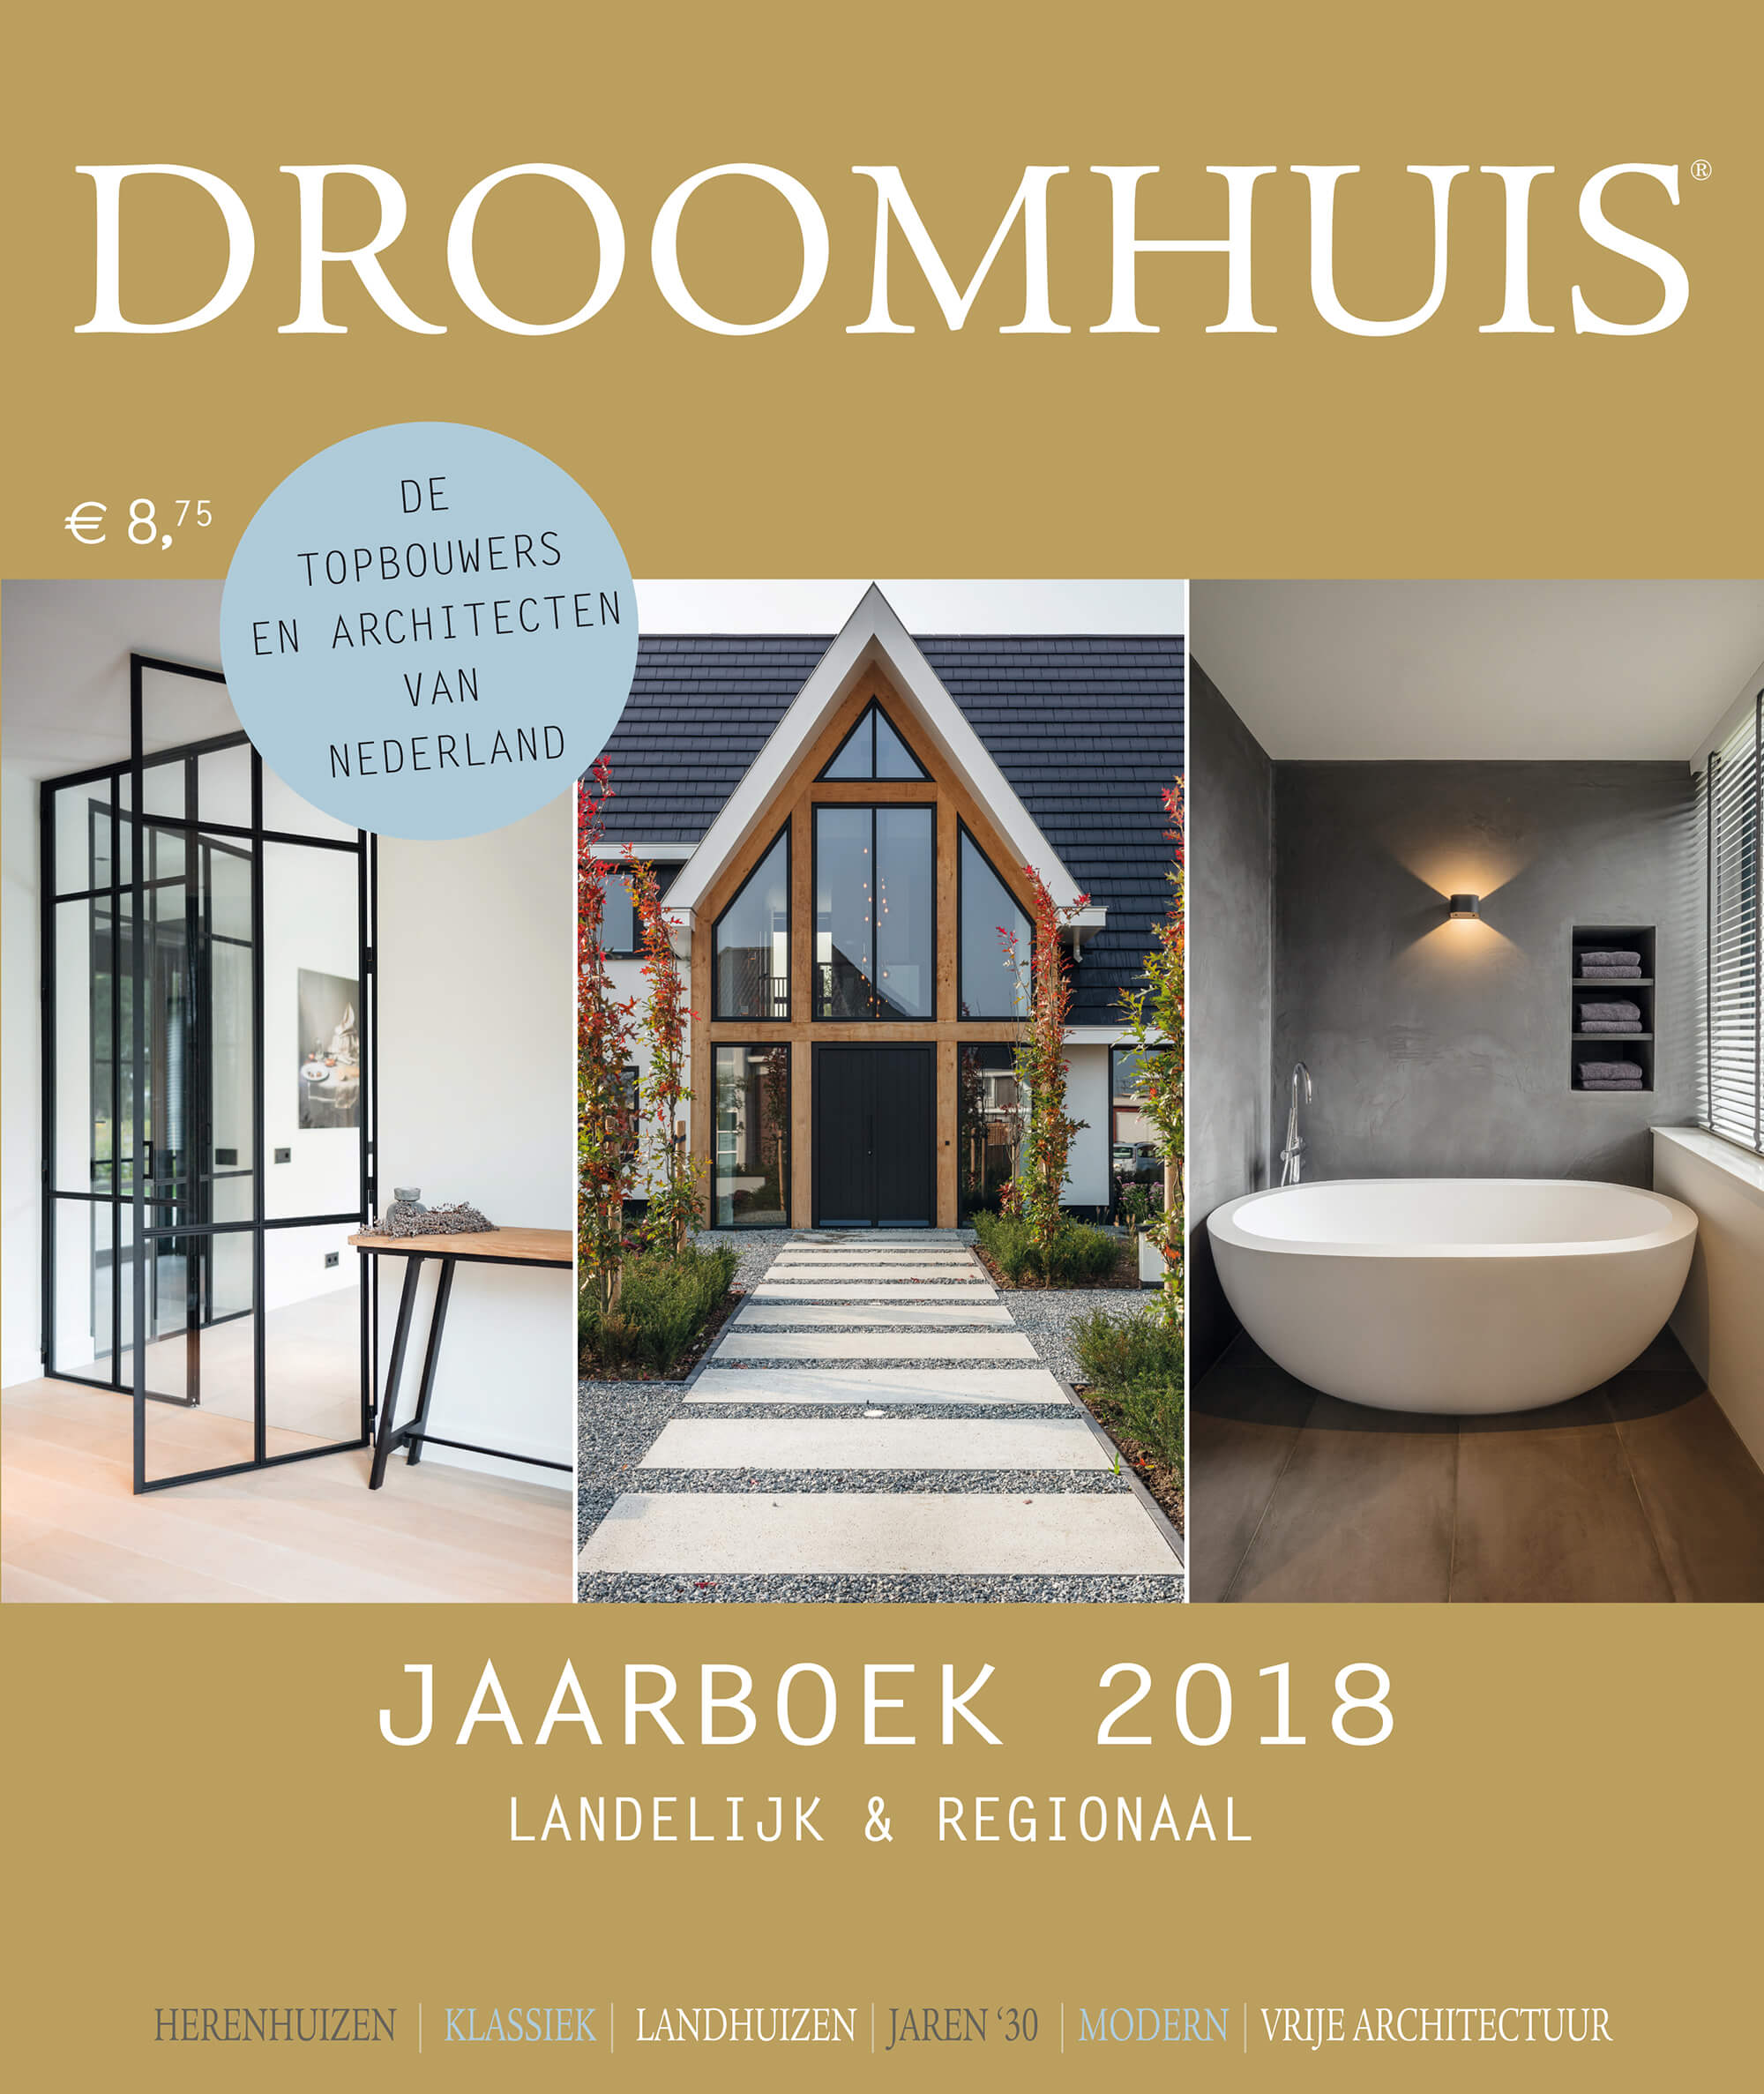 - Once a year the dutch magazine Kavel & Huis publishes a Dream Homes special. I contributed to the '18 edition.